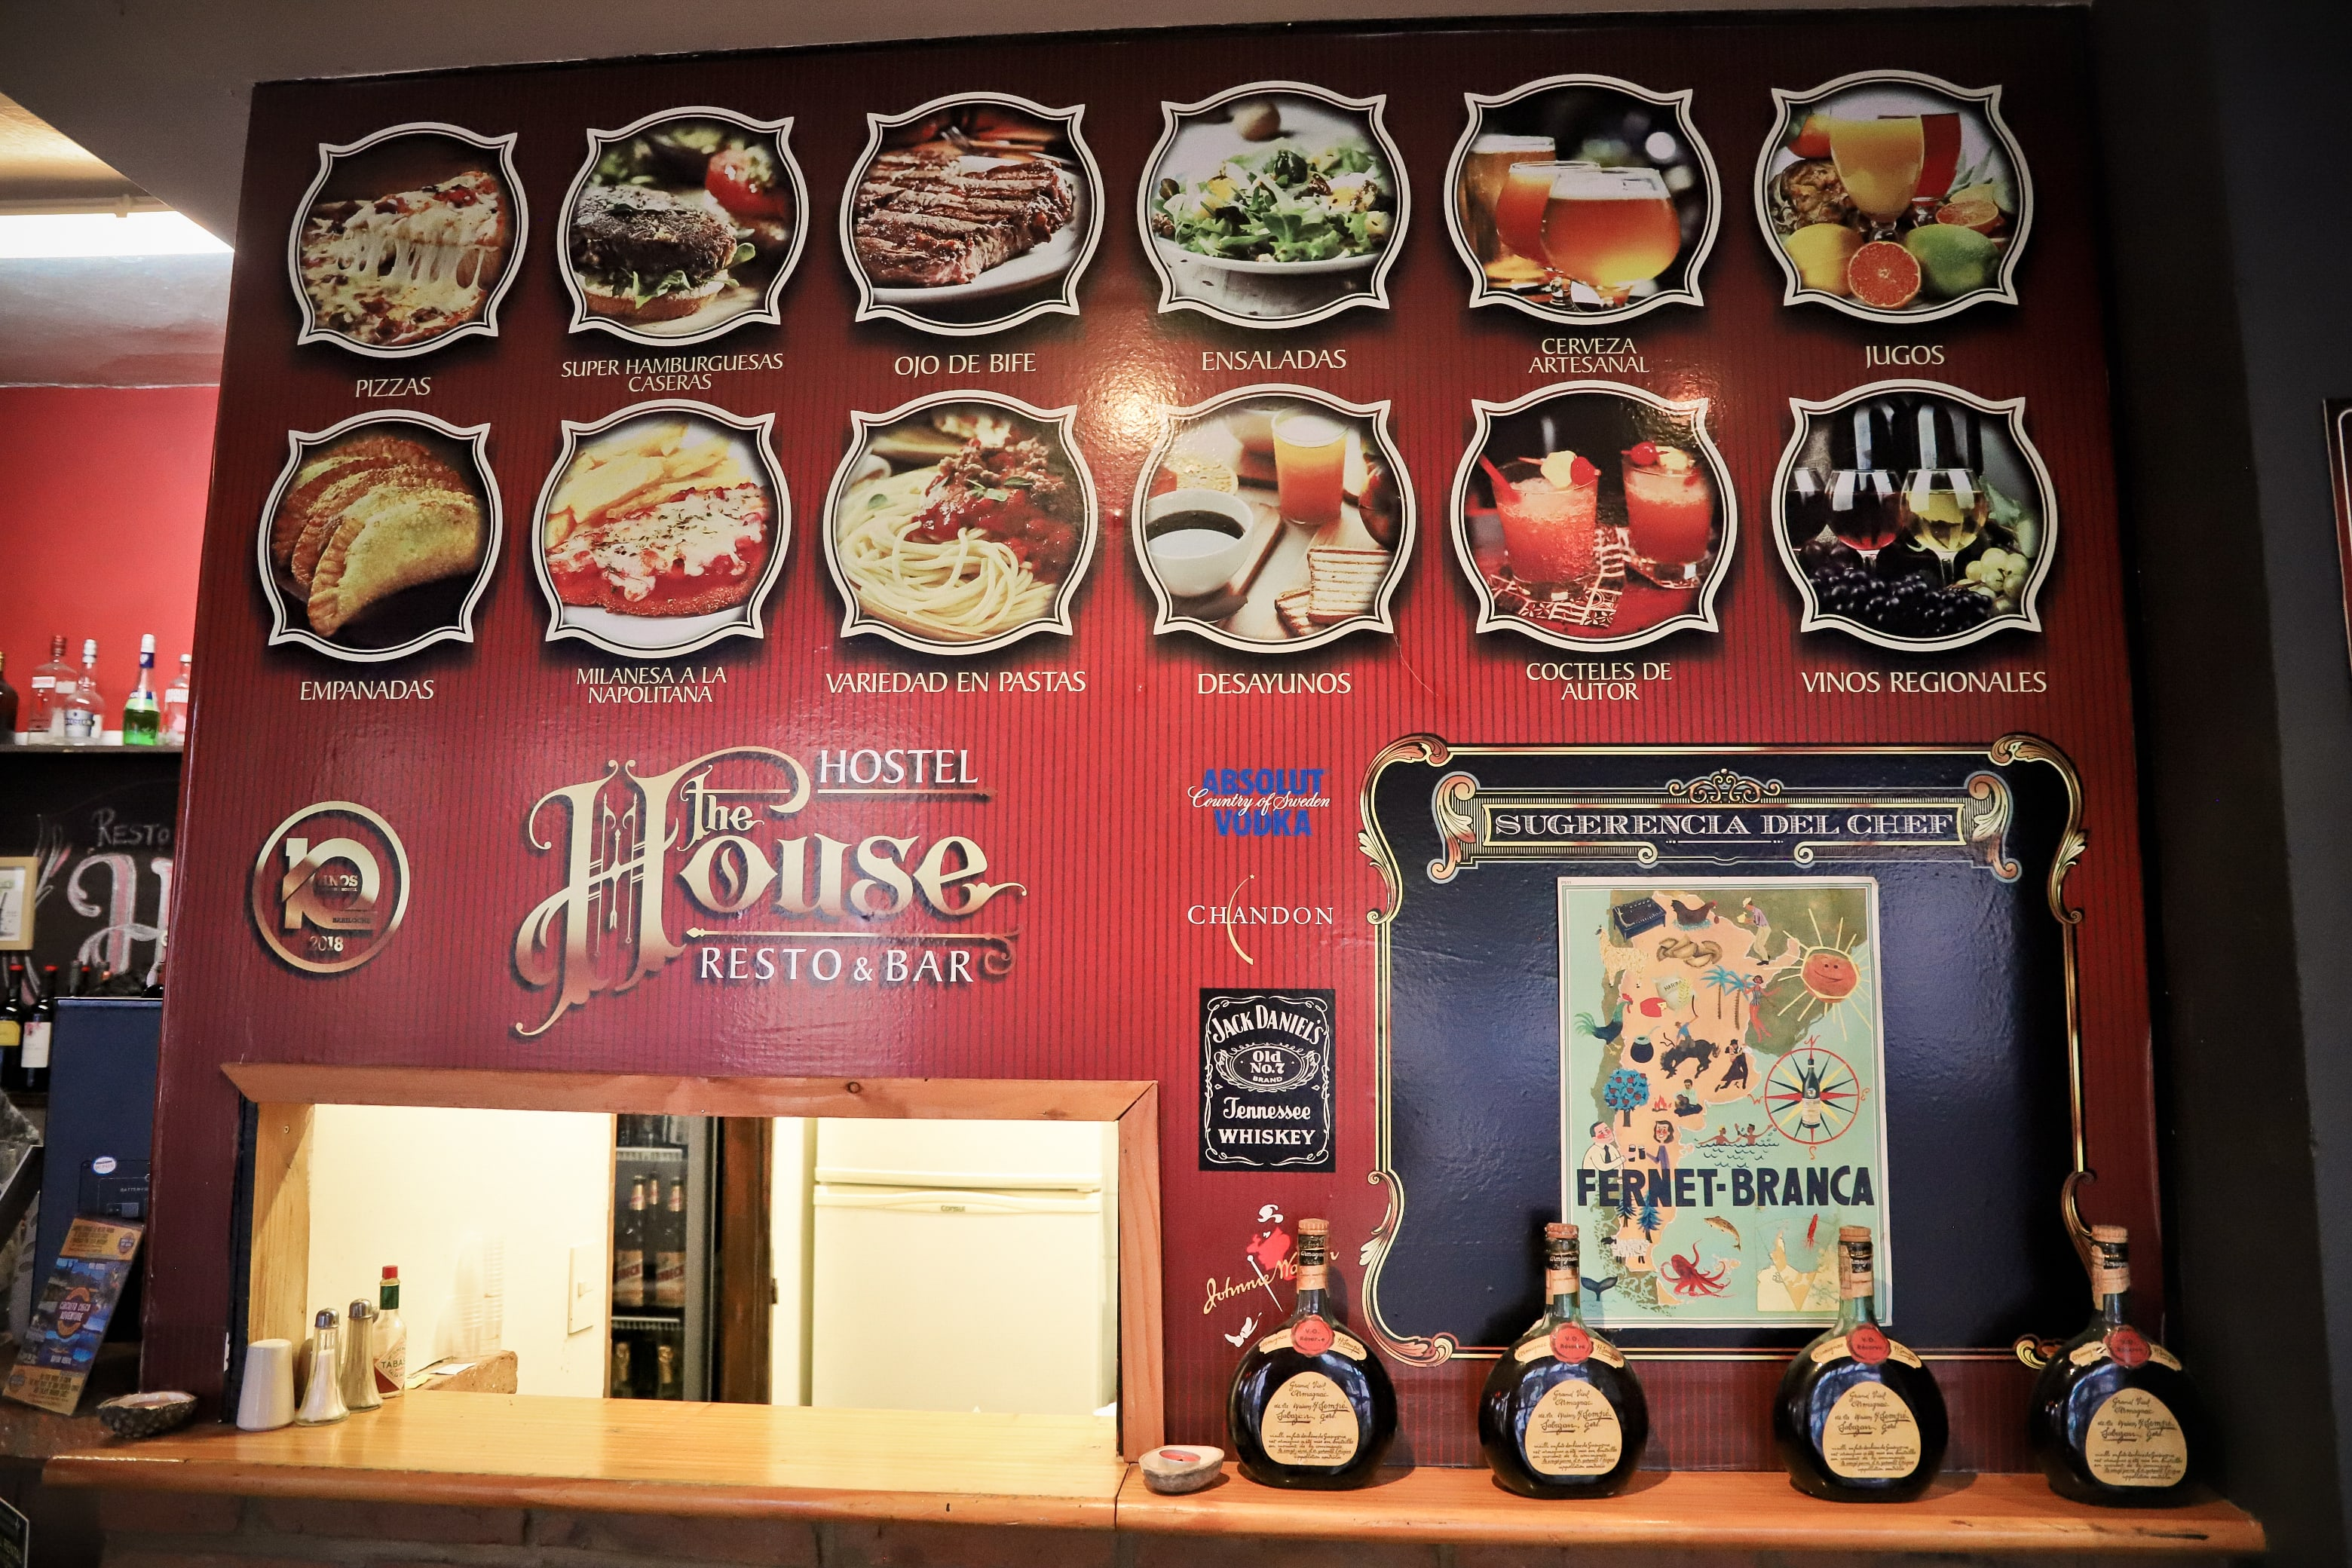 The House Hostel Resto & Bar